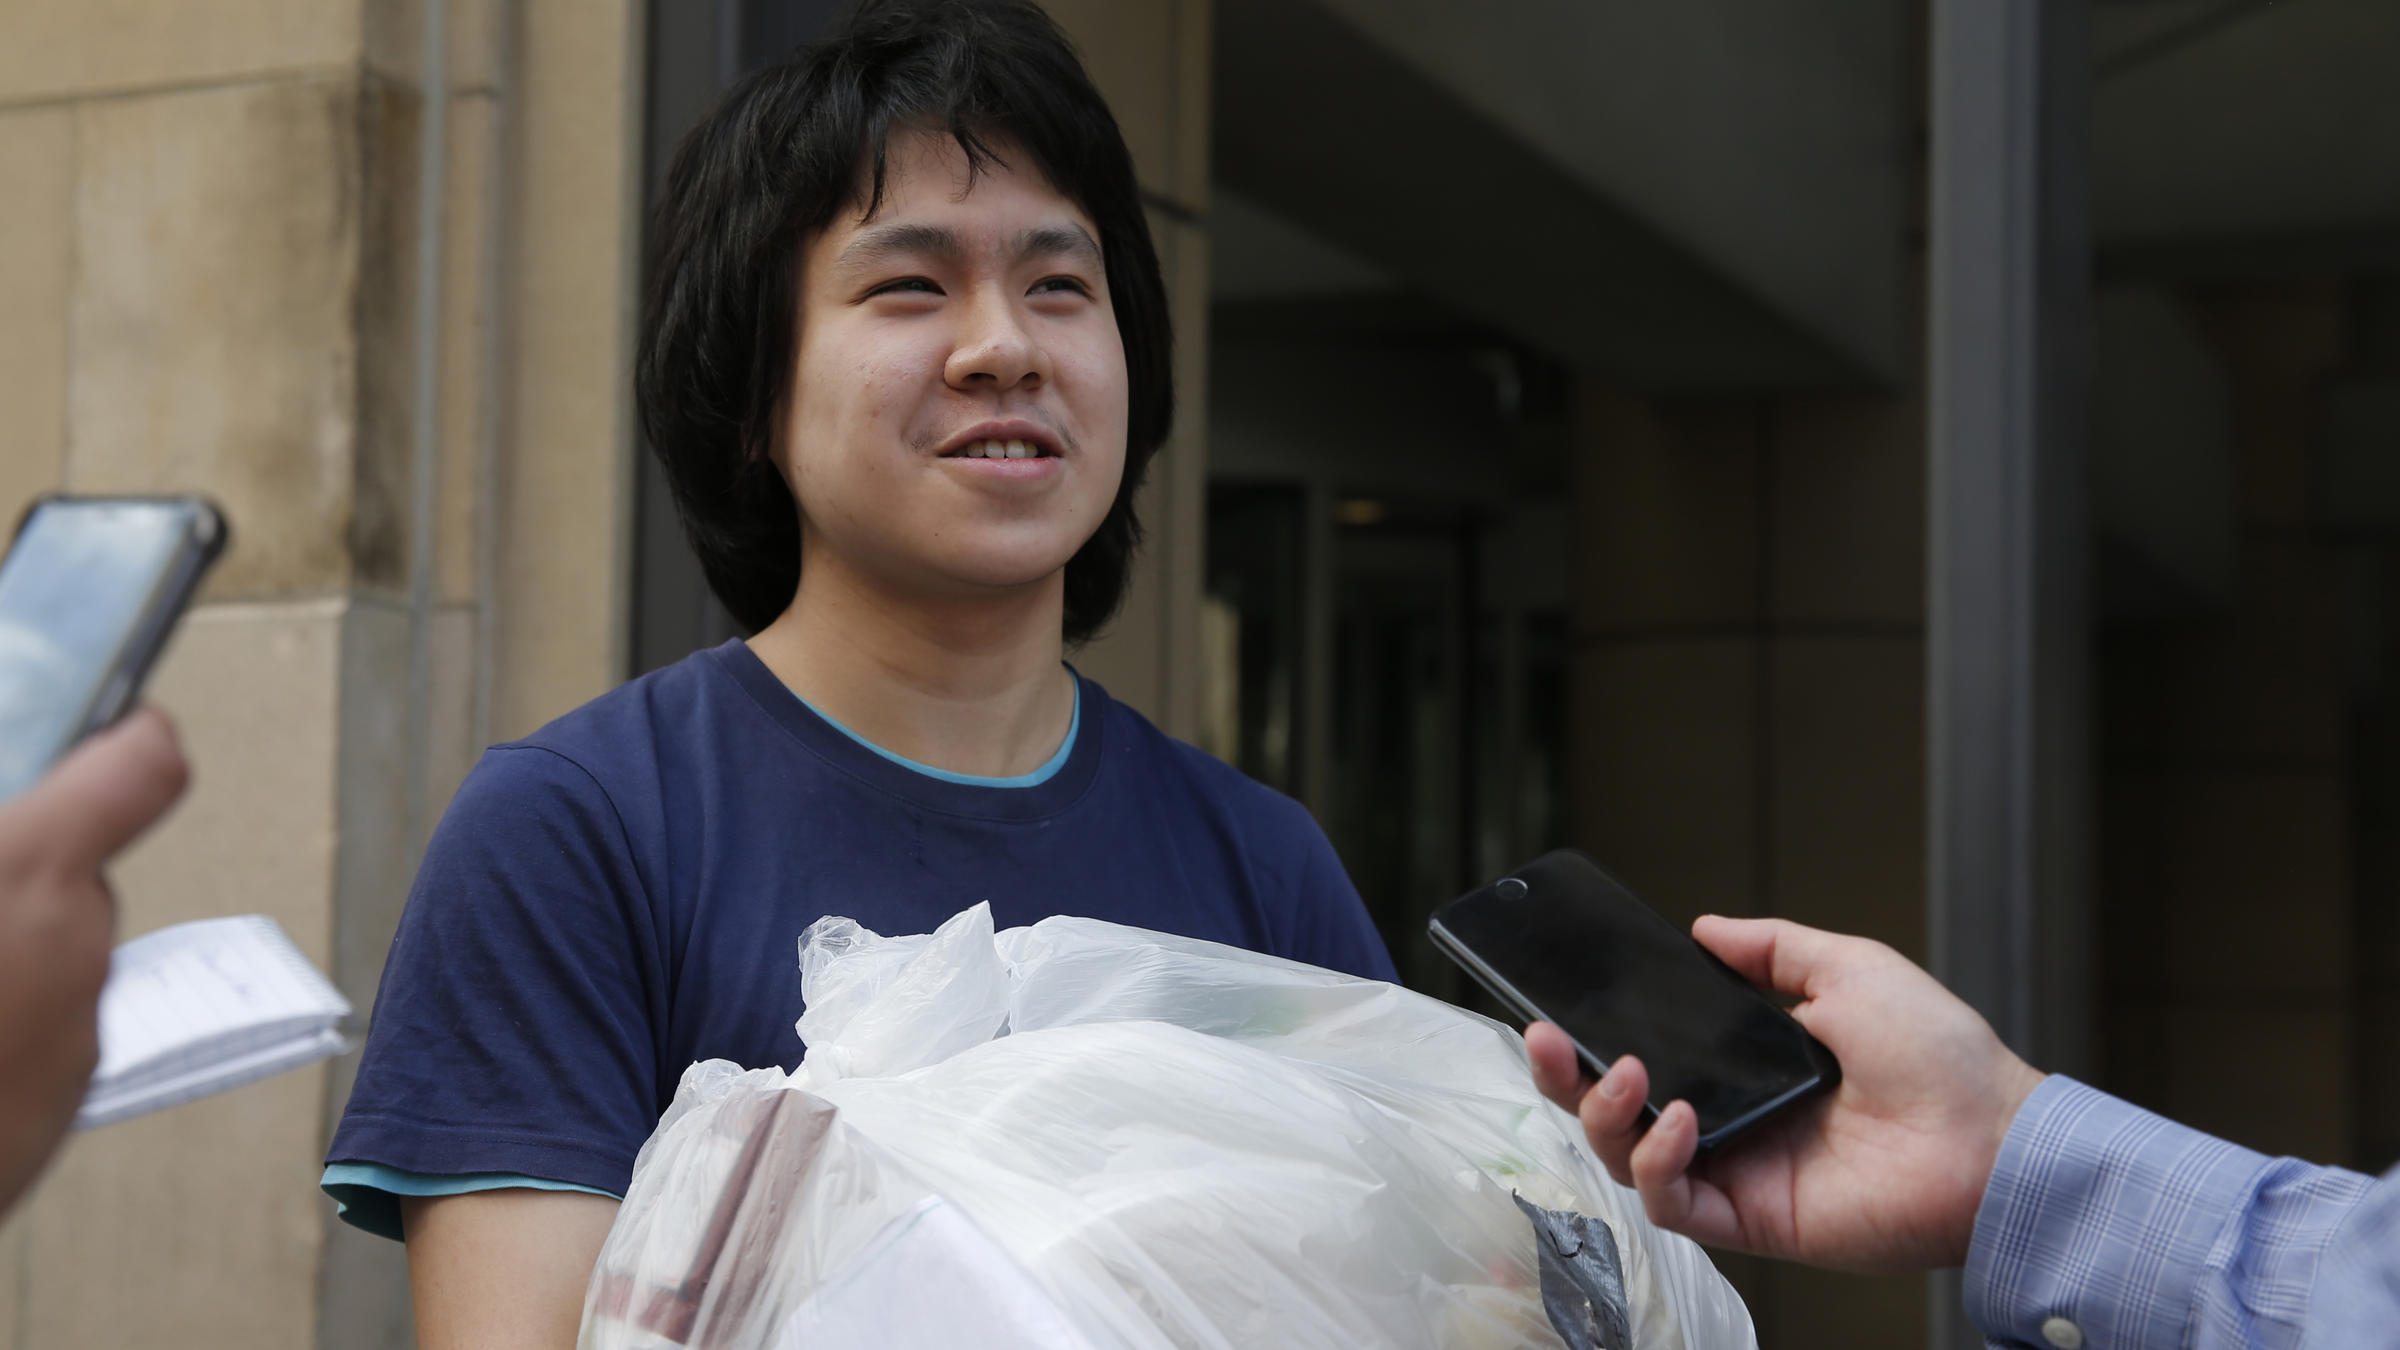 Teen blogger Amos Yee released from 10-month detention in US